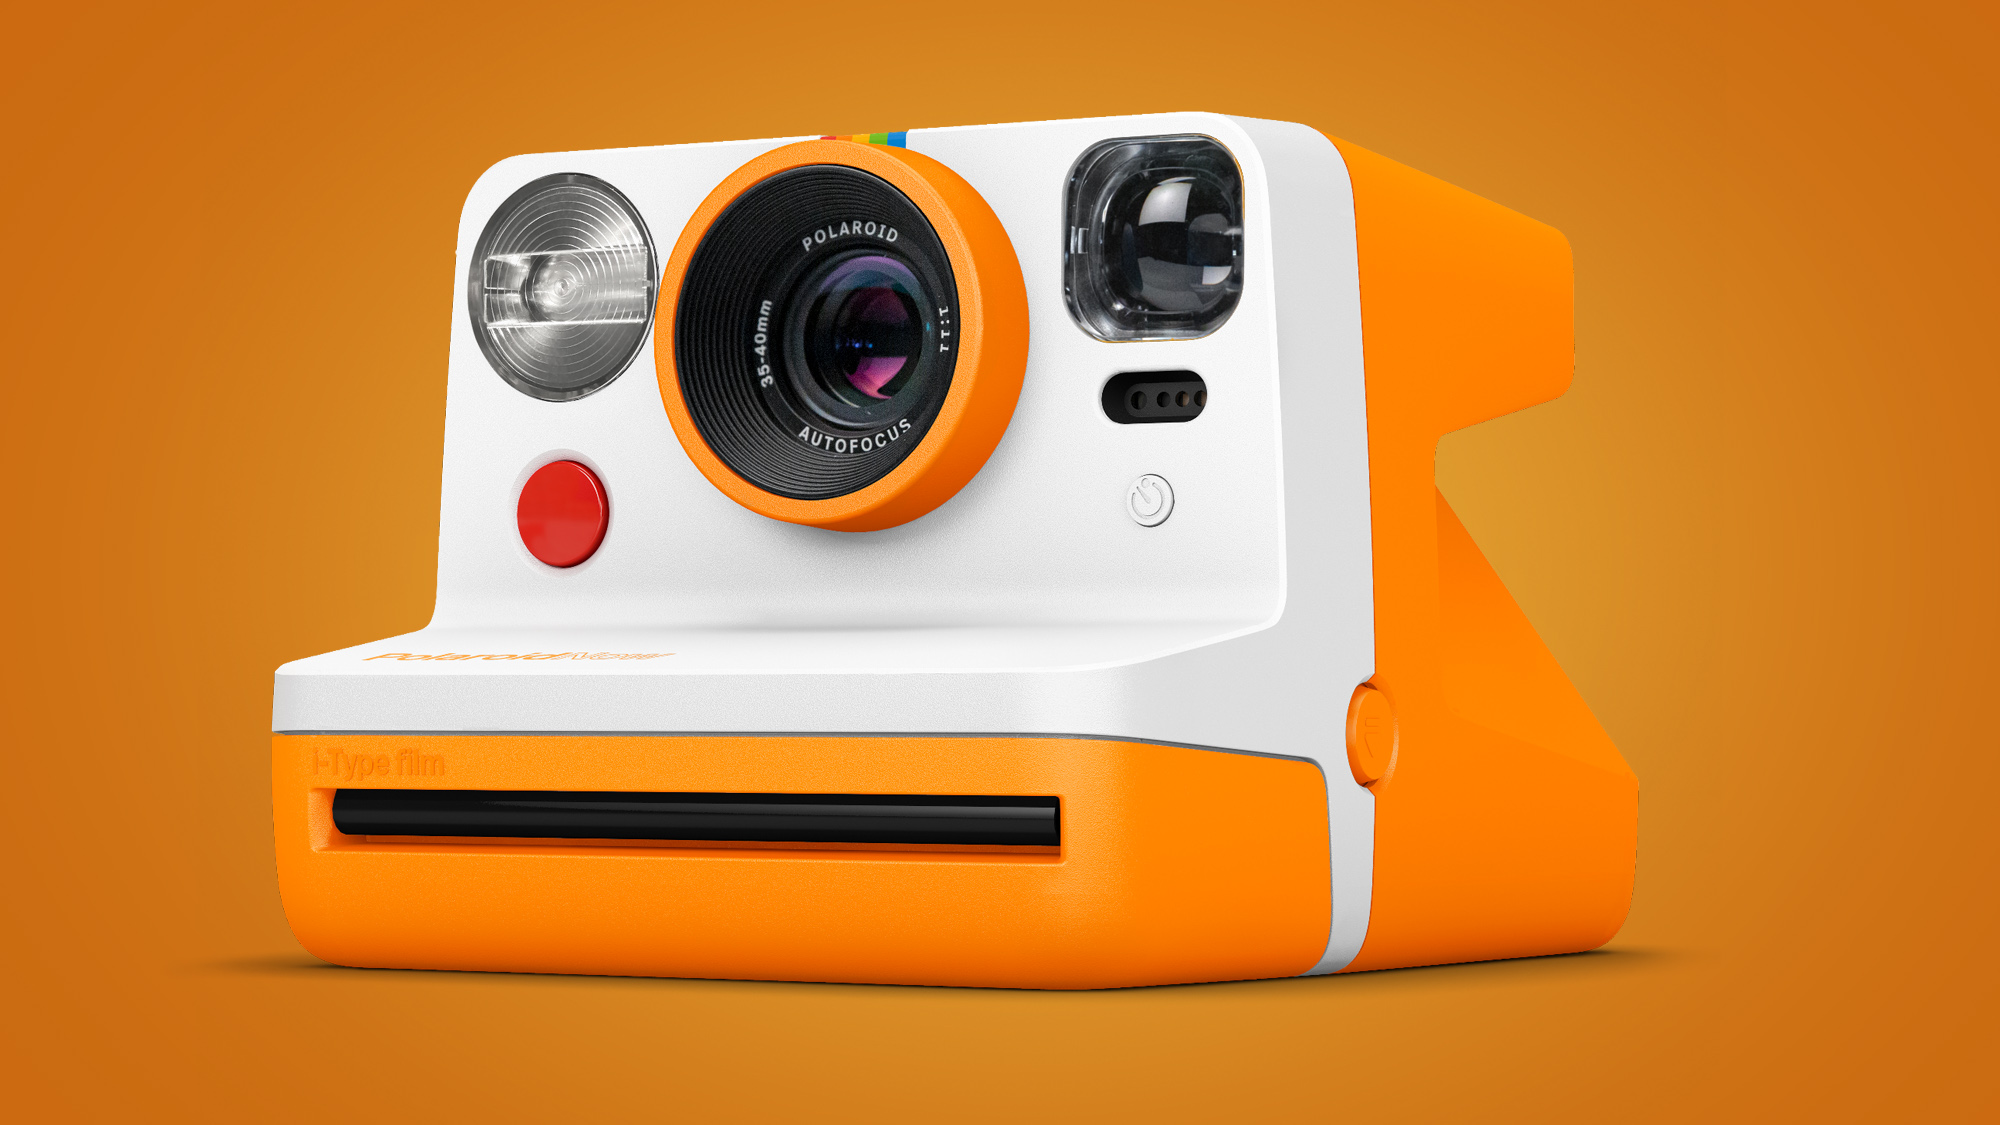 Polaroid Now is an instant camera with handy autofocus skills –read our full review